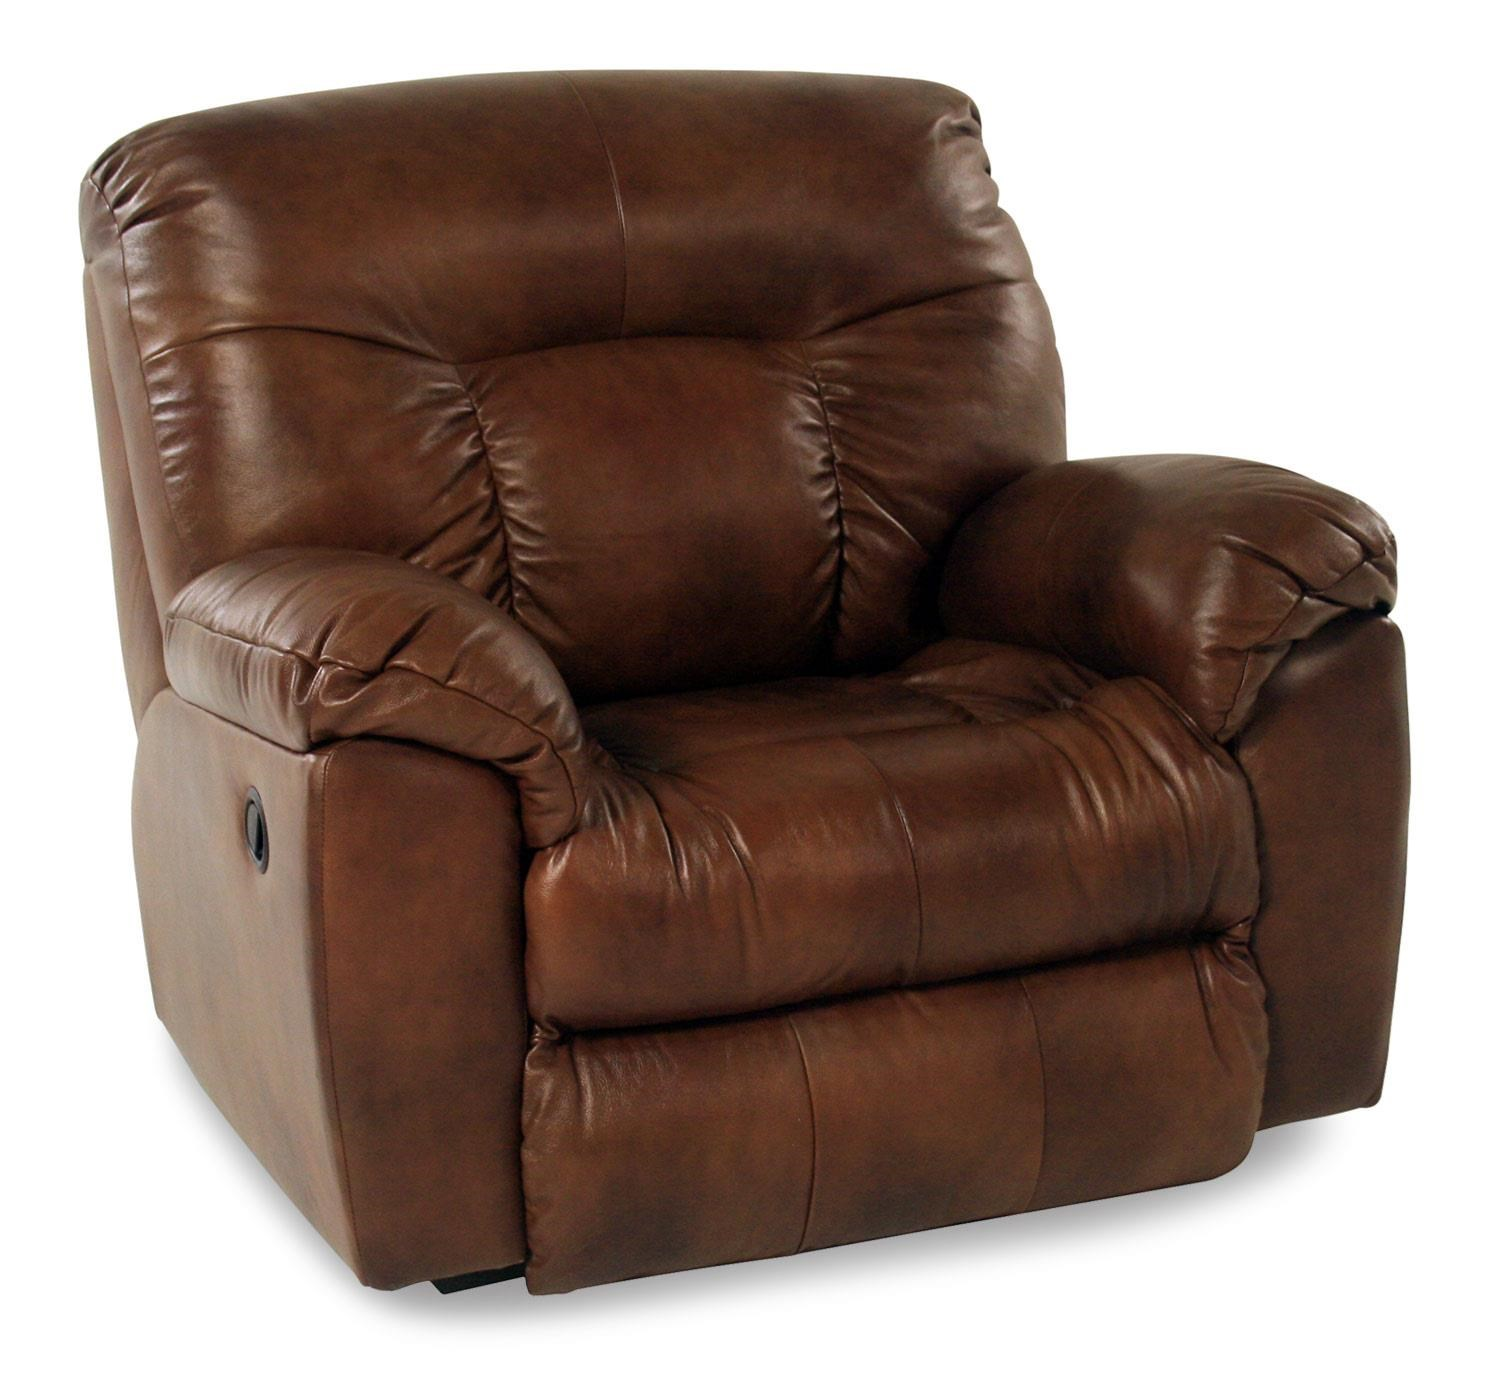 Oversized Leather Power Recliner